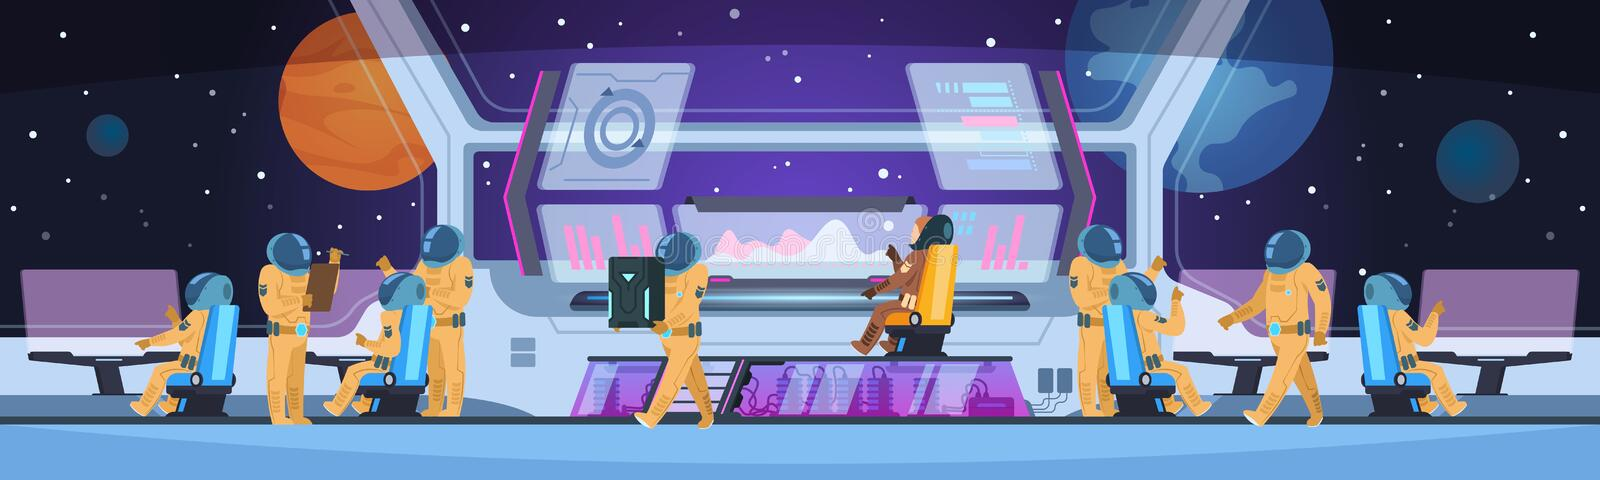 Spaceship futuristic interior. Spacecraft captain cabin with pioneer science team command and astronauts. Spaceman. Vector concept royalty free illustration